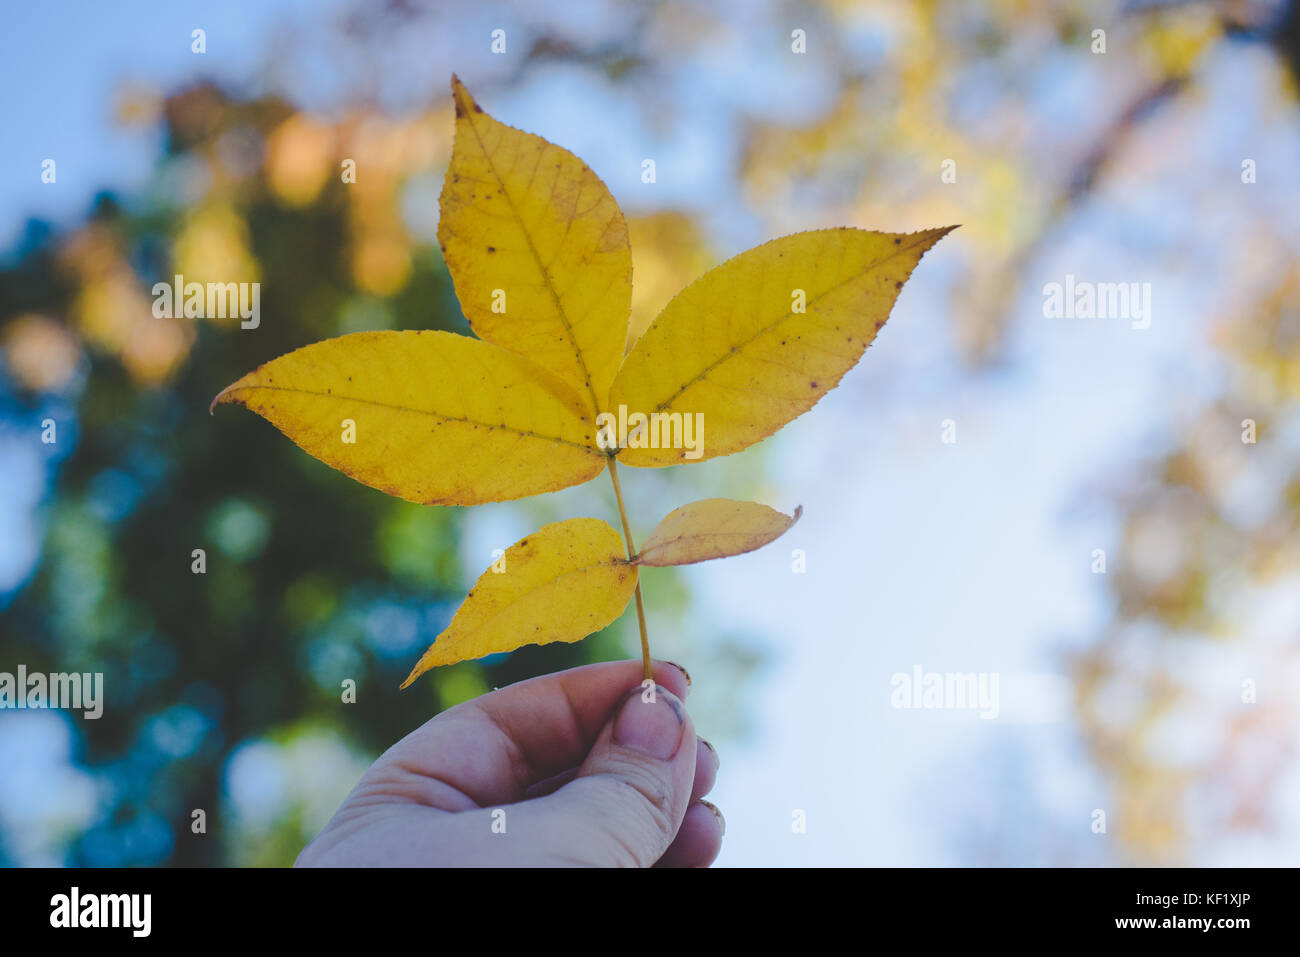 Hand holding yellow autumn leaf against the sky and sun - Stock Image